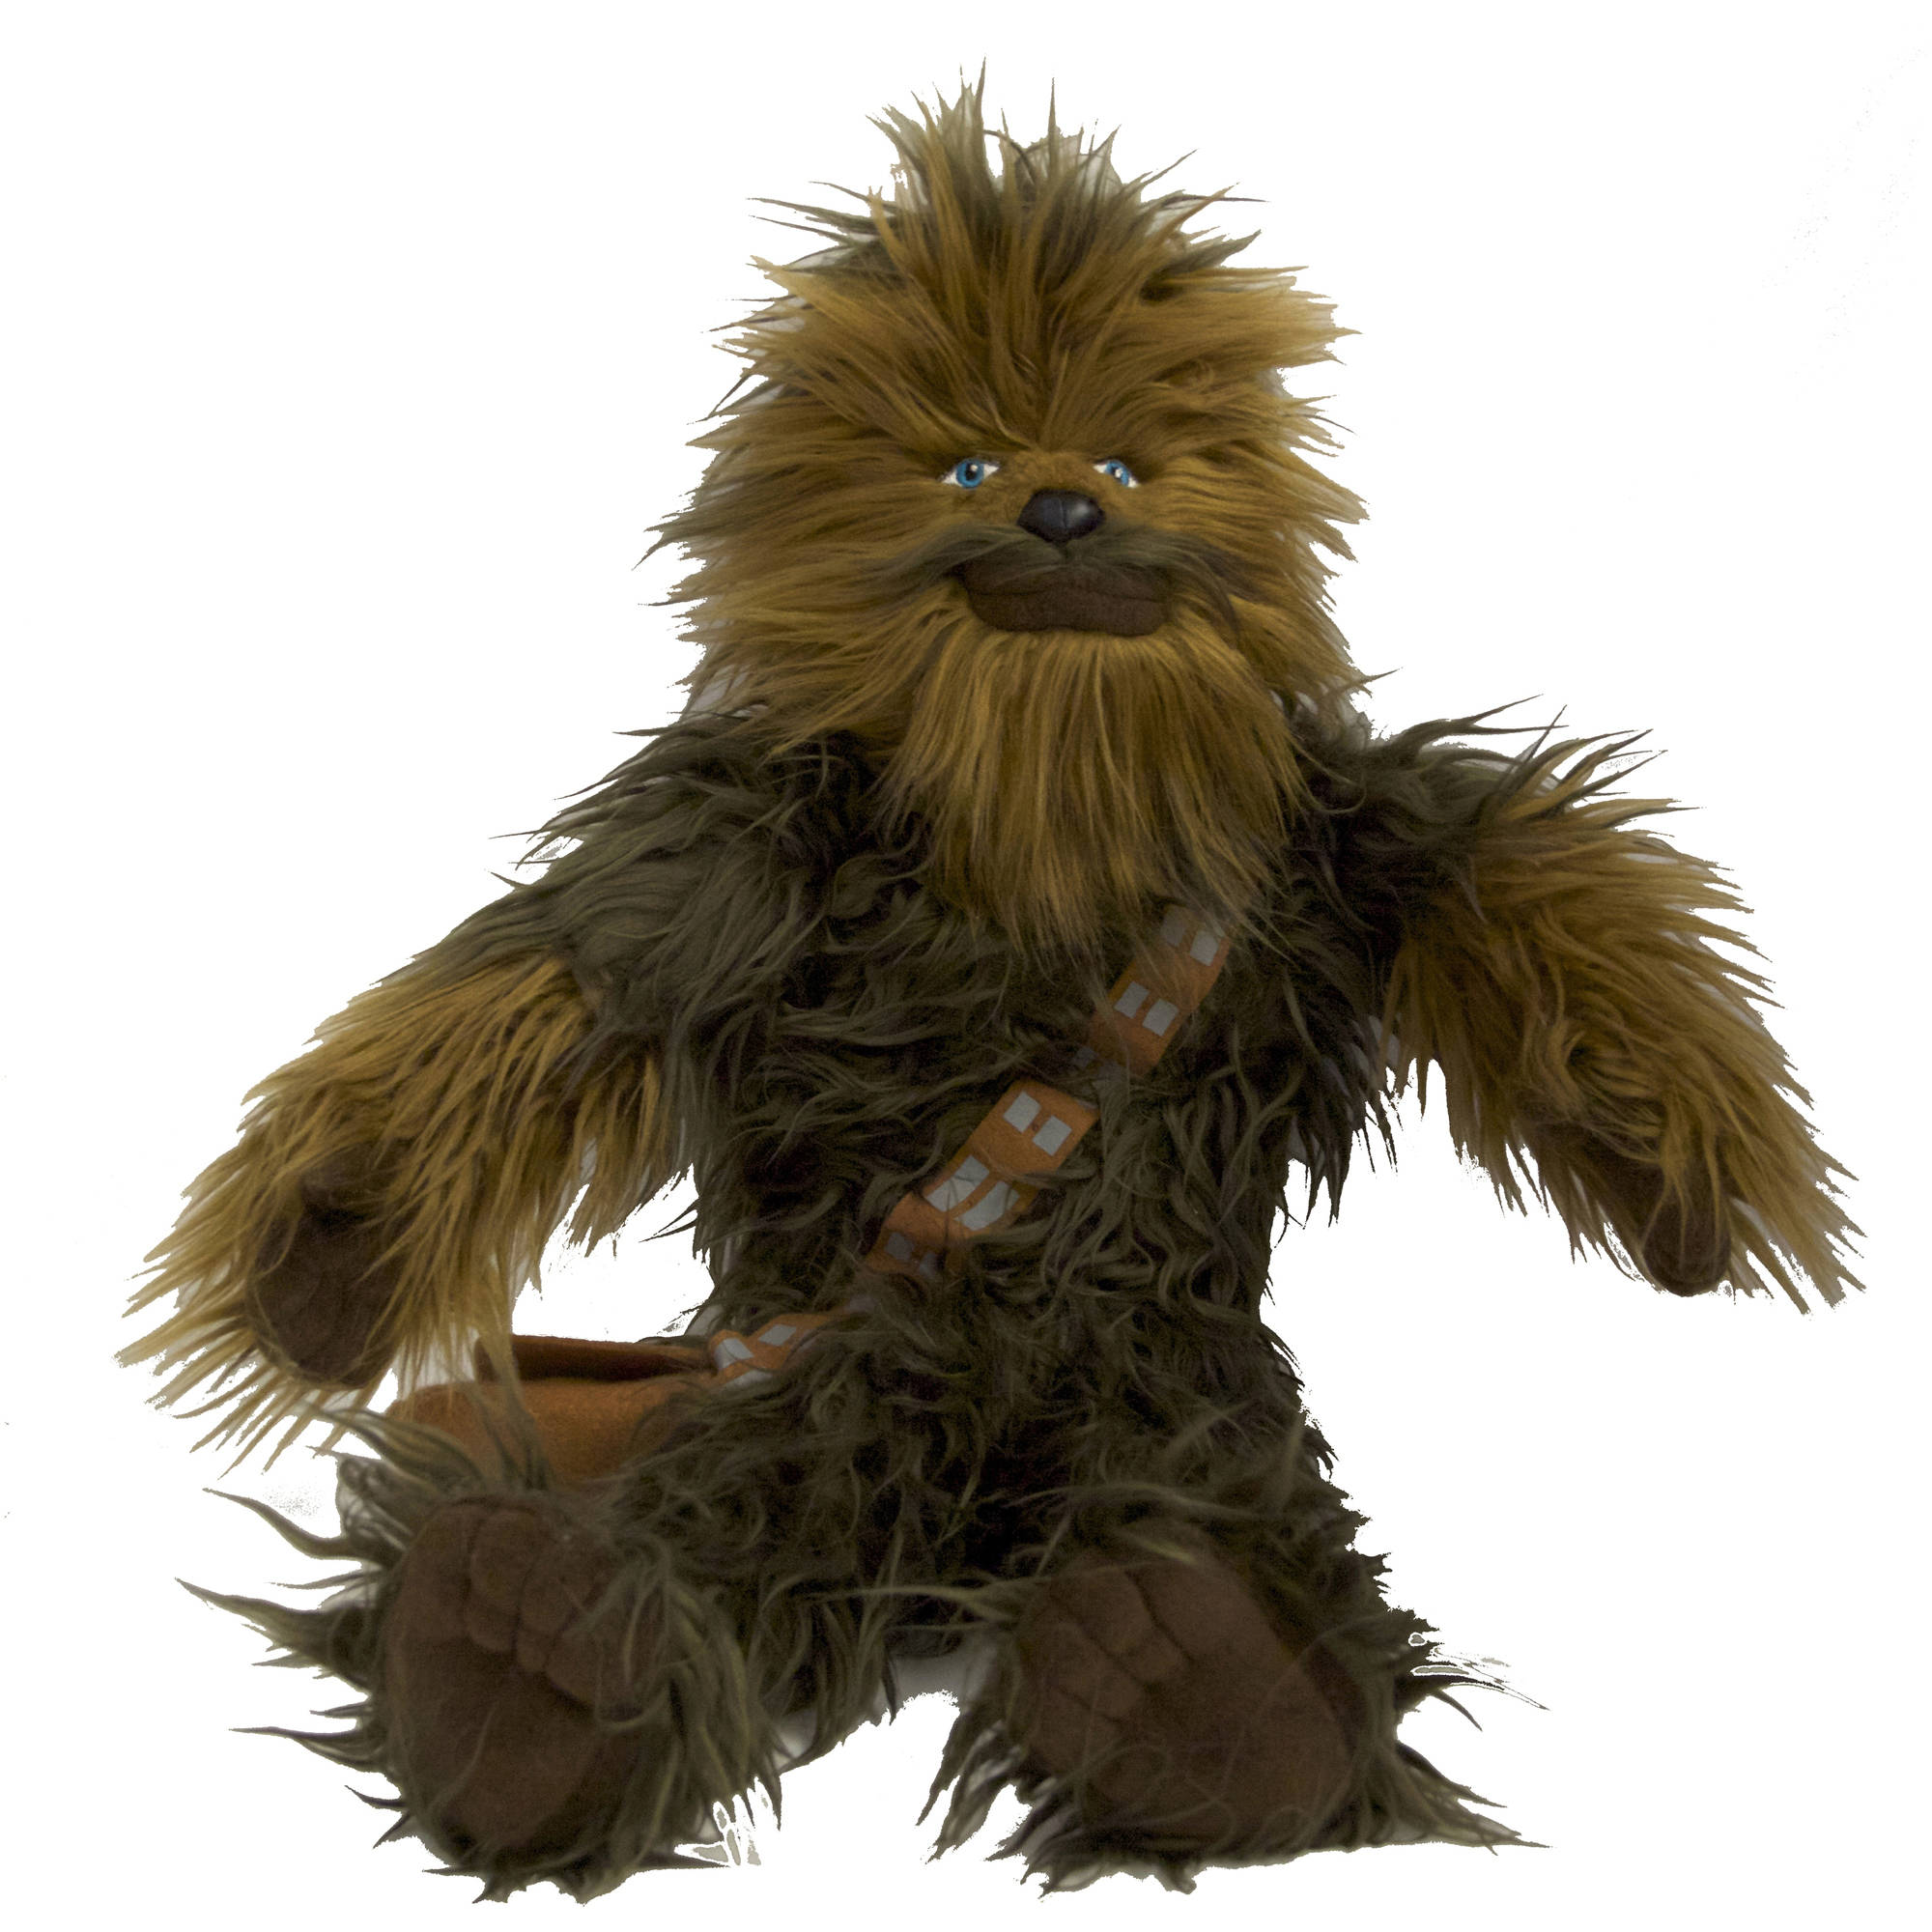 Star Wars Chewbacca Pillowbuddy